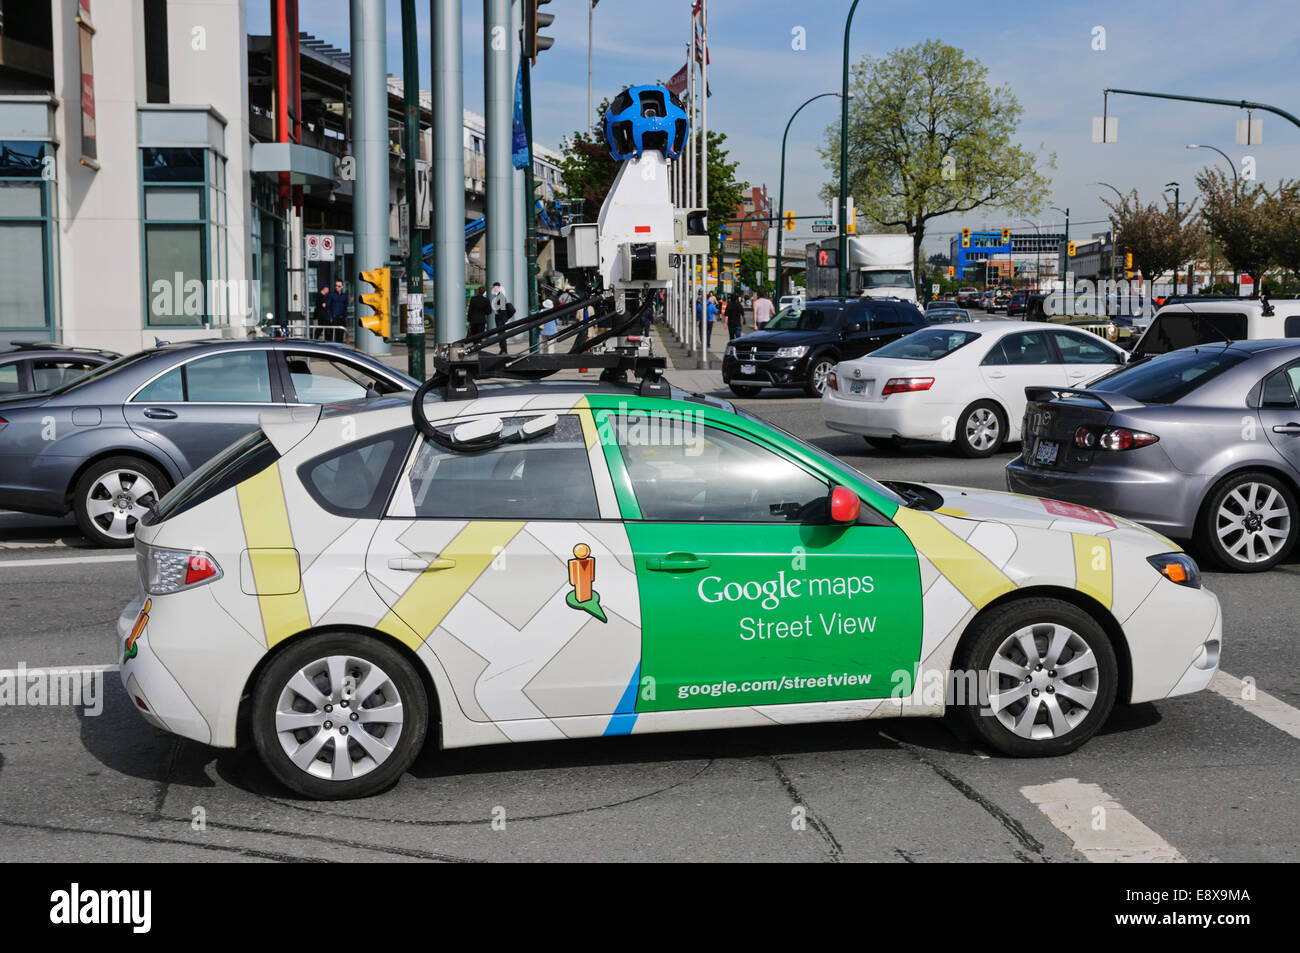 A Google Street View Mapping Vehicle In Car Traffic Vancouver